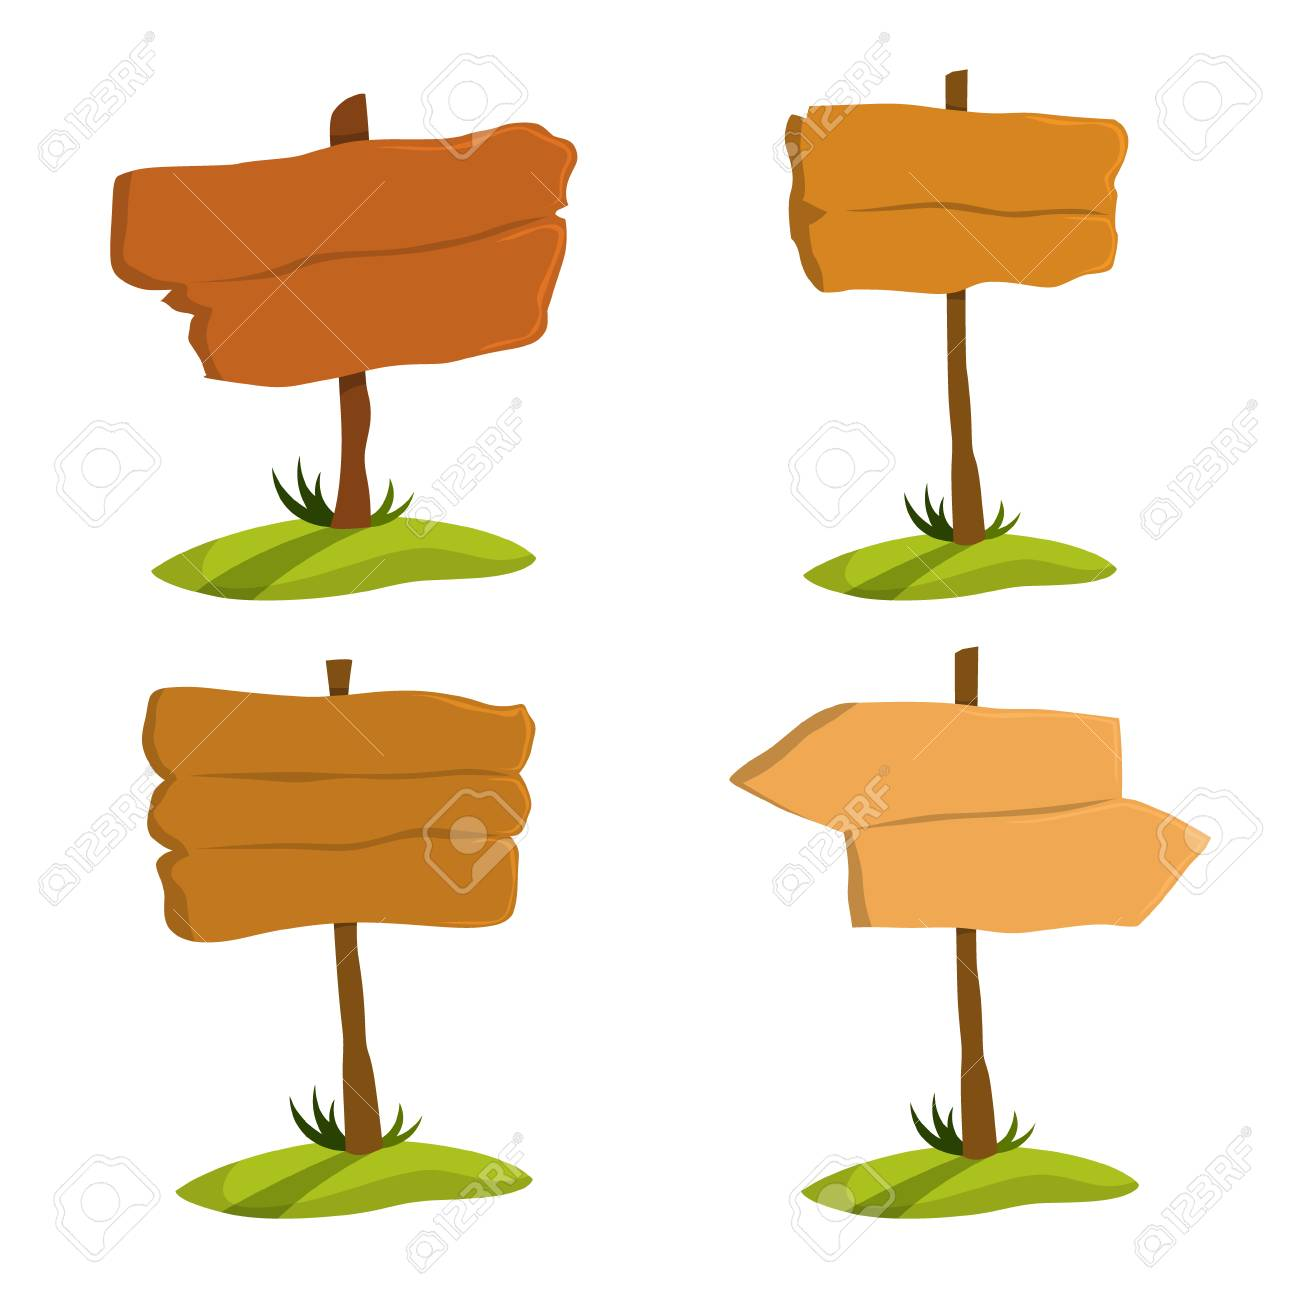 Wooden signboard set. Collection of various sign made of wood. Blank billboard, empty space for message. Isolated flat vector illustration - 122950410